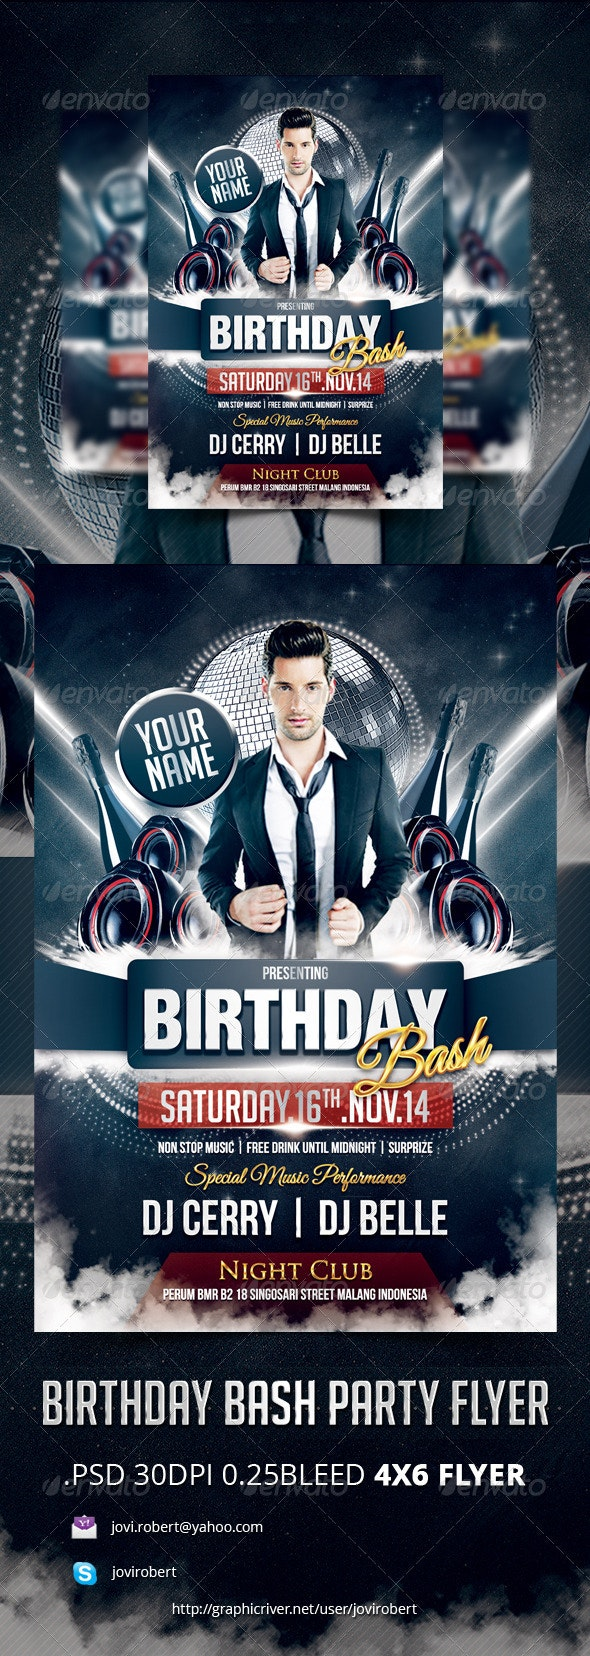 Birthday Bash Party Flyer - Events Flyers